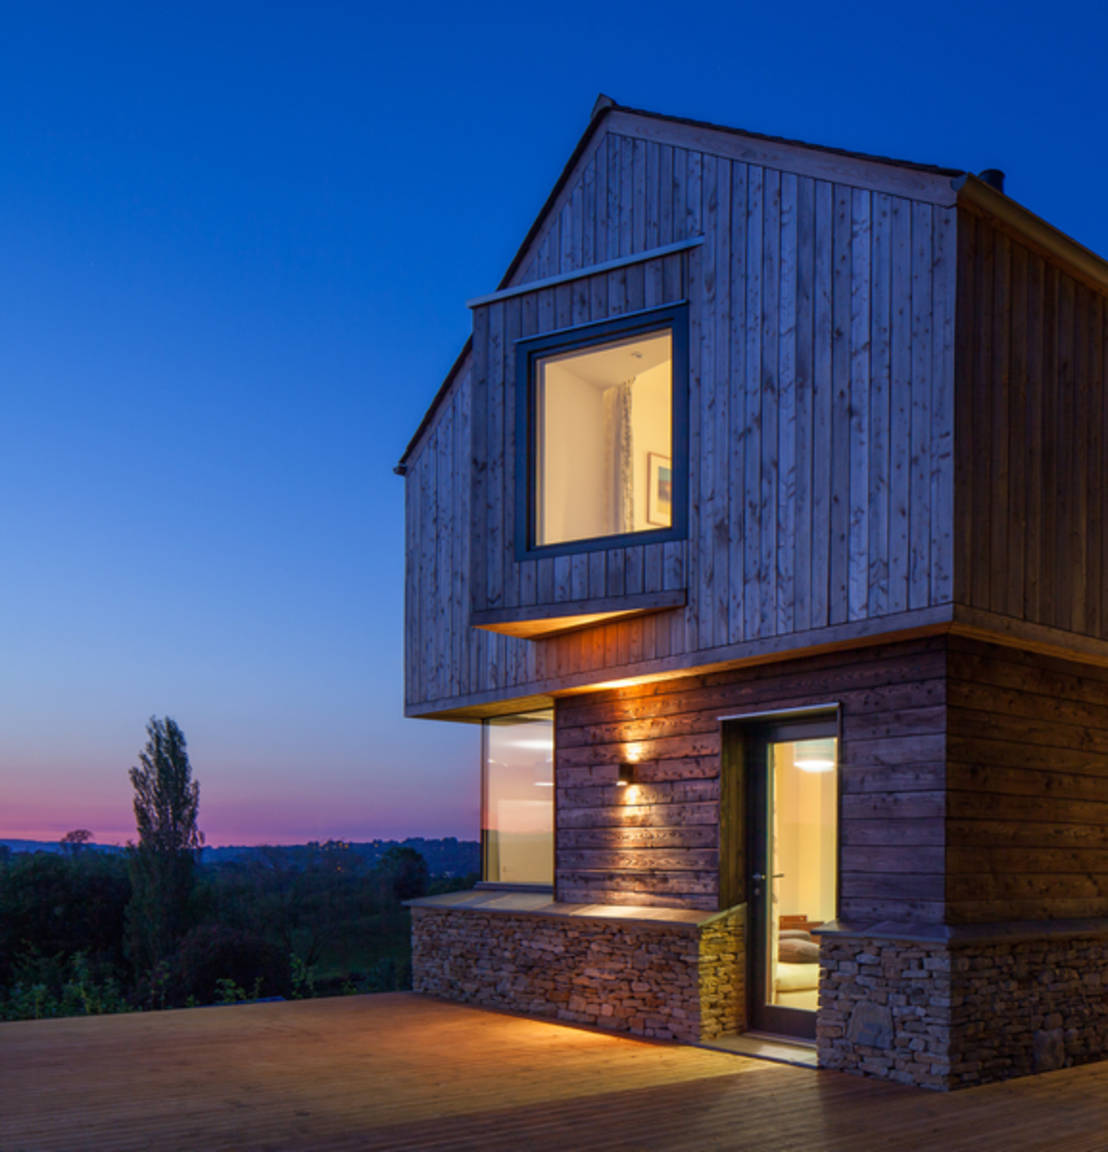 Homify 360°: Newly Built Eco-Home